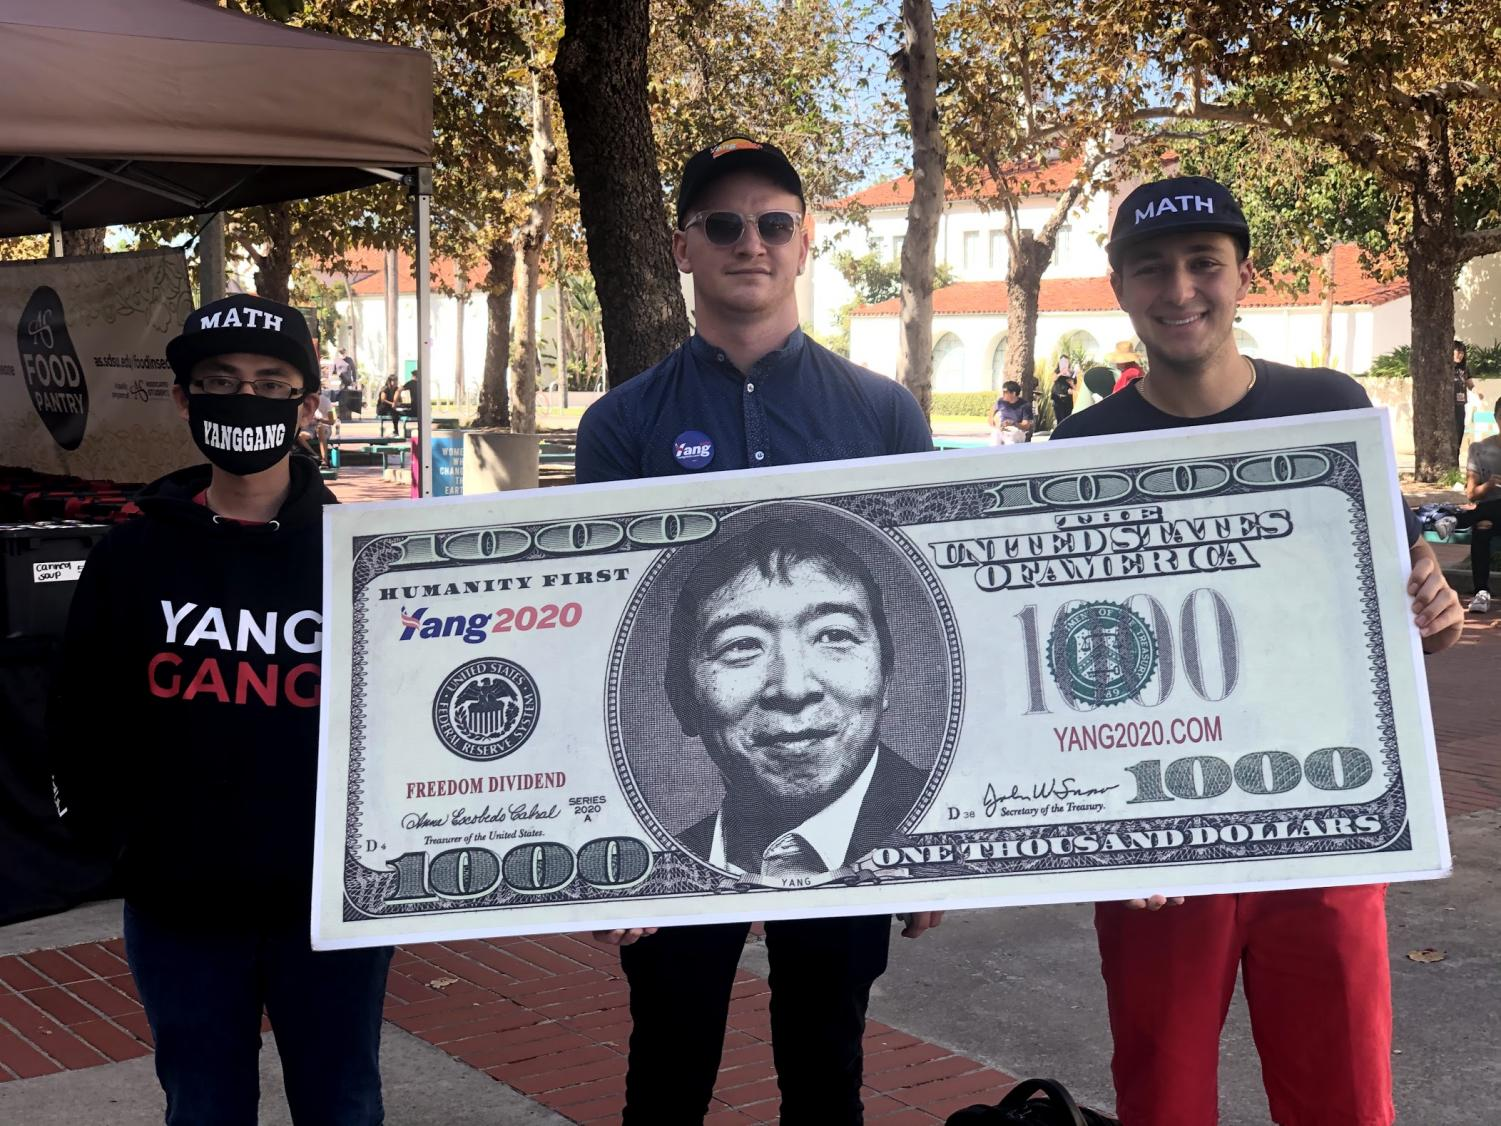 Student organizers canvass outside Love Library for Andrew Yang (D).